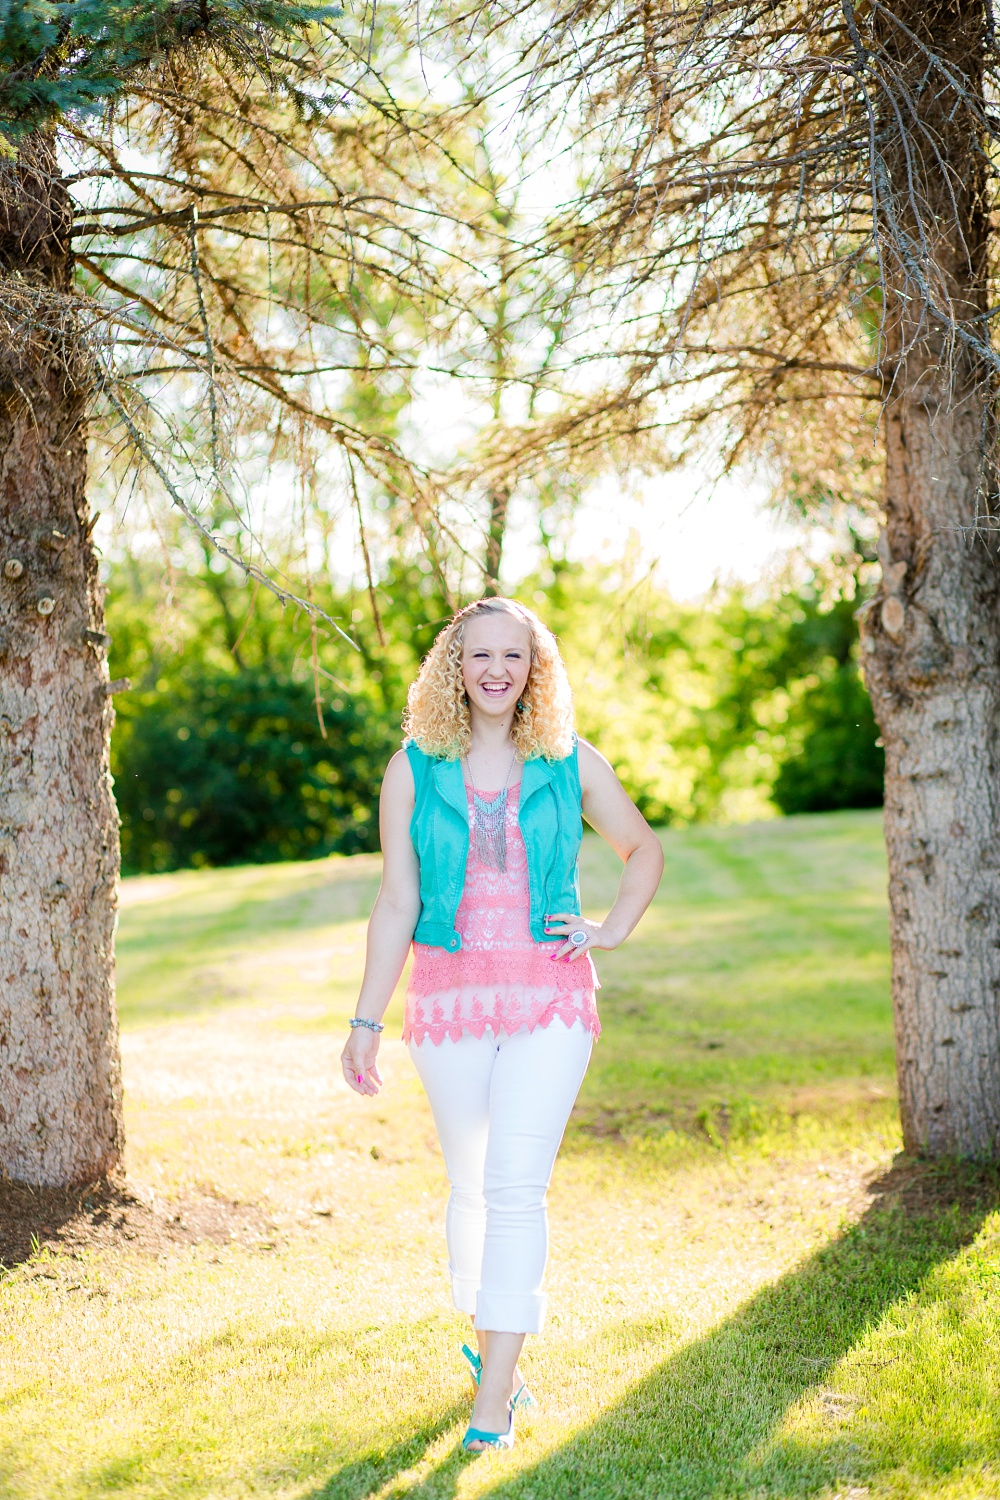 Outdoor, Country Styled High School Senior Pictures by Amber Langerud Photography | Audubon, MN | HS senior walking photo